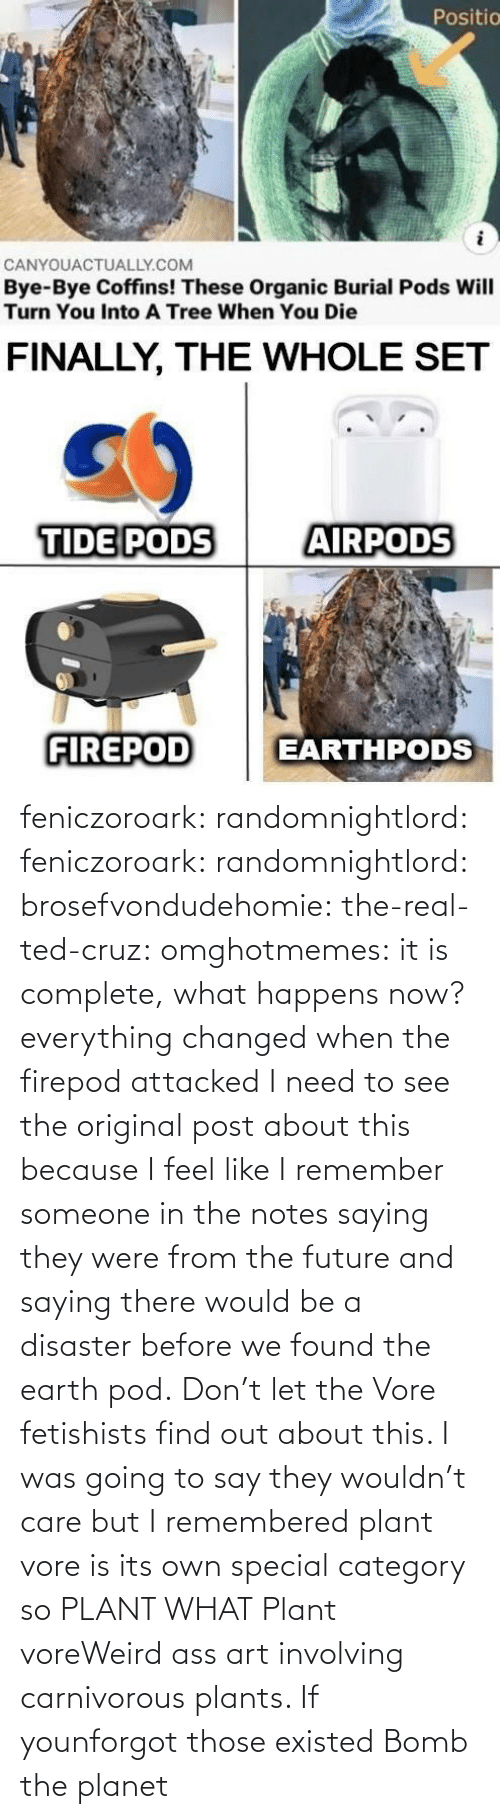 When The: feniczoroark:  randomnightlord:  feniczoroark:  randomnightlord:  brosefvondudehomie: the-real-ted-cruz:  omghotmemes: it is complete, what happens now? everything changed when the firepod attacked    I need to see the original post about this because I feel like I remember someone in the notes saying they were from the future and saying there would be a disaster before we found the earth pod.    Don't let the Vore fetishists find out about this.    I was going to say they wouldn't care but I remembered plant vore is its own special category so   PLANT WHAT   Plant voreWeird ass art involving carnivorous plants. If younforgot those existed   Bomb the planet